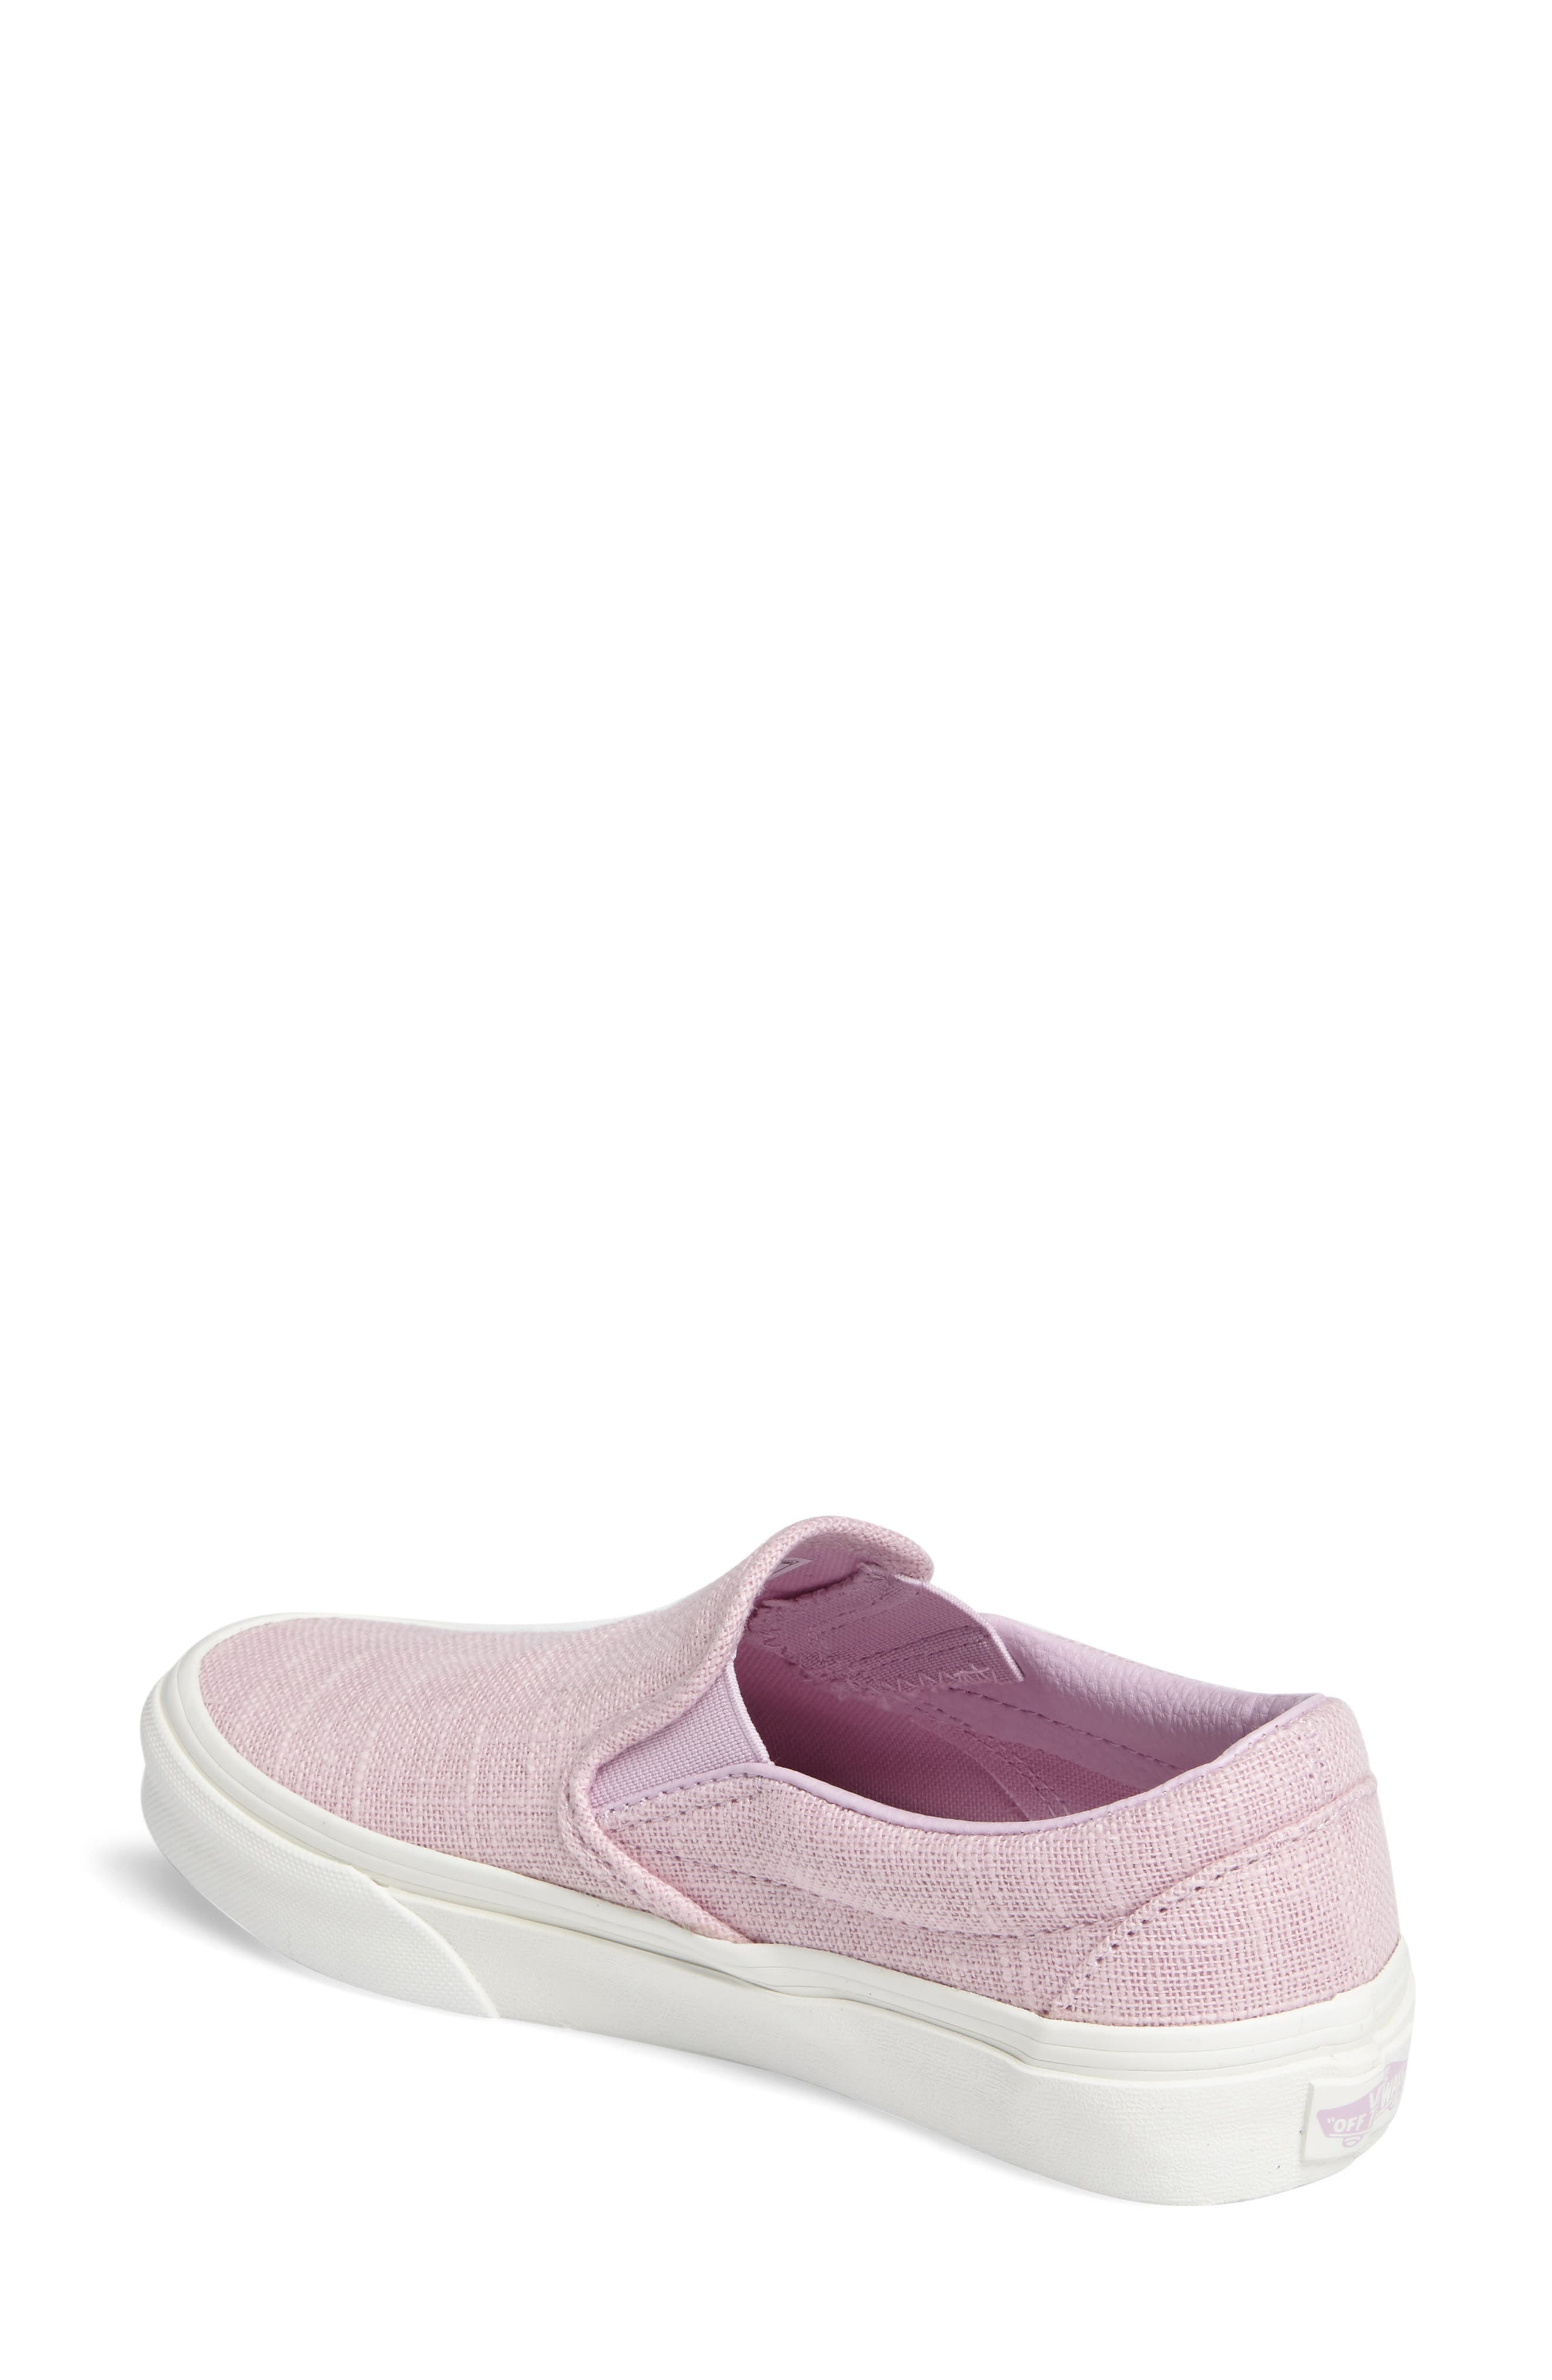 Classic Slip-On Sneaker,                             Alternate thumbnail 162, color,